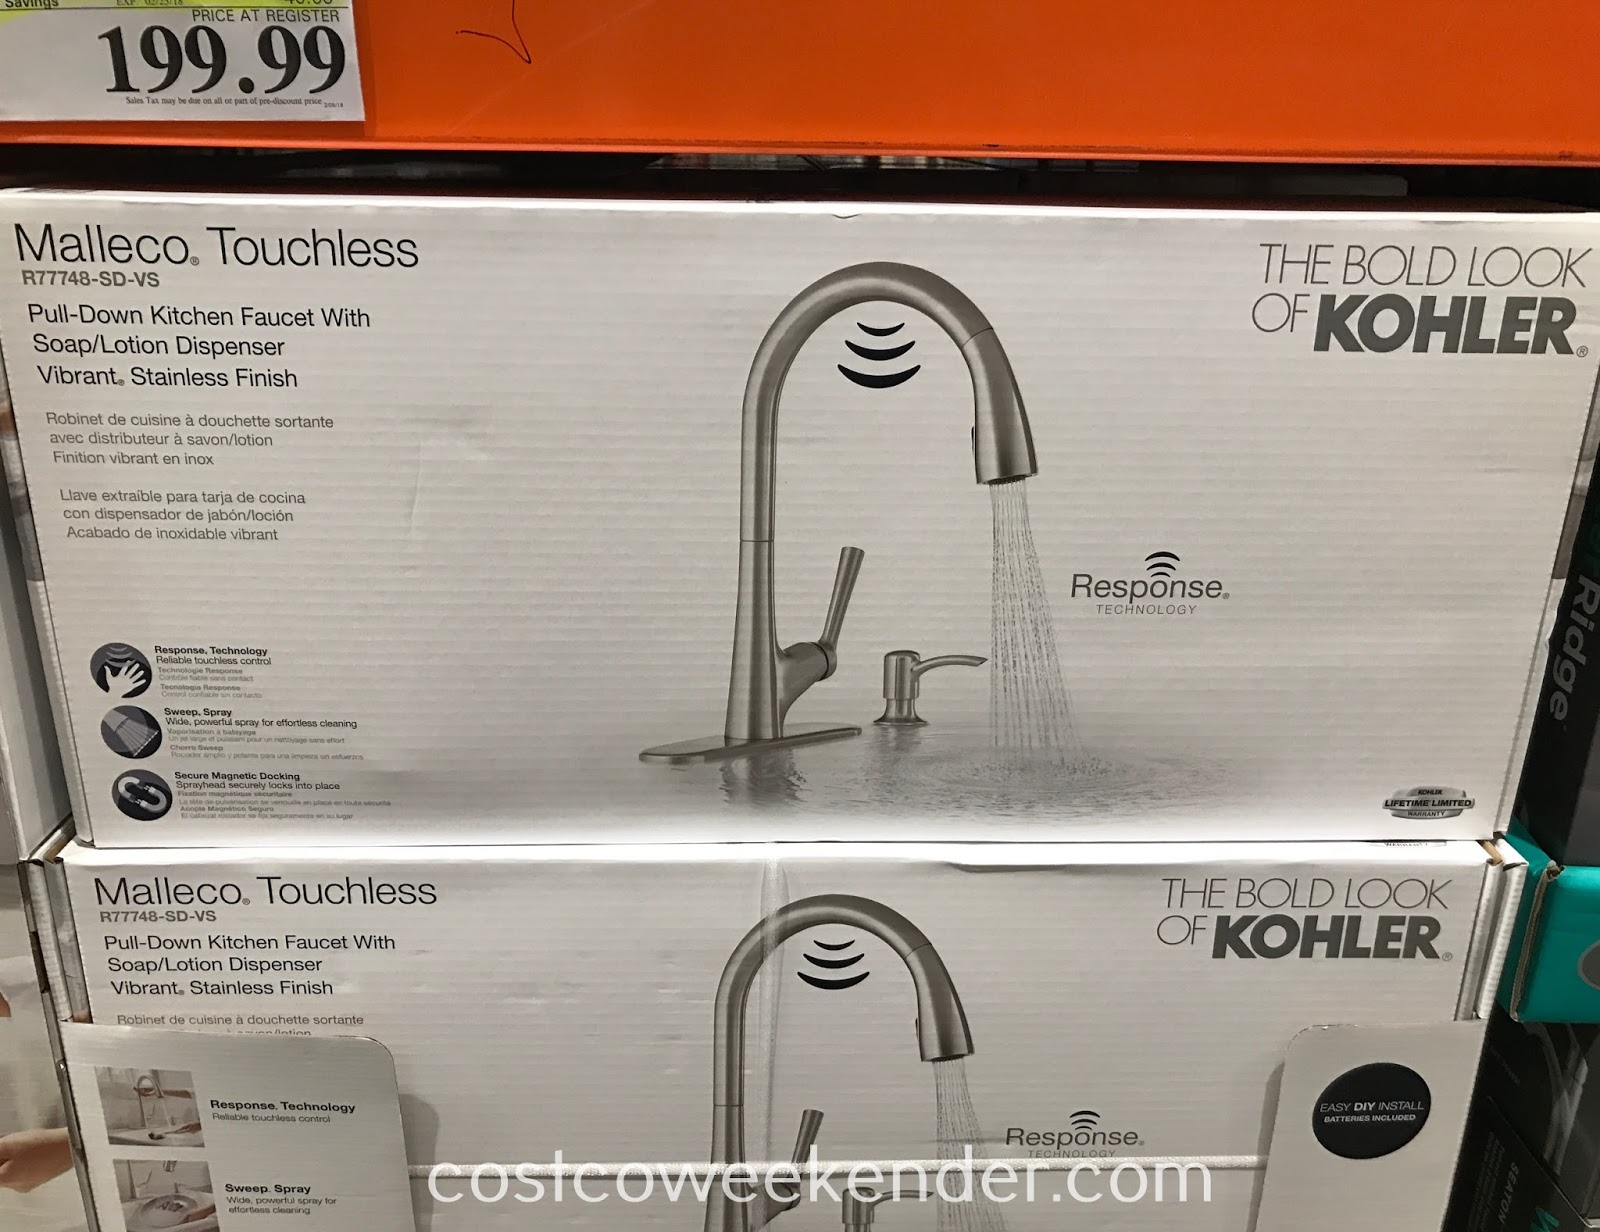 costco kitchen faucet touchless